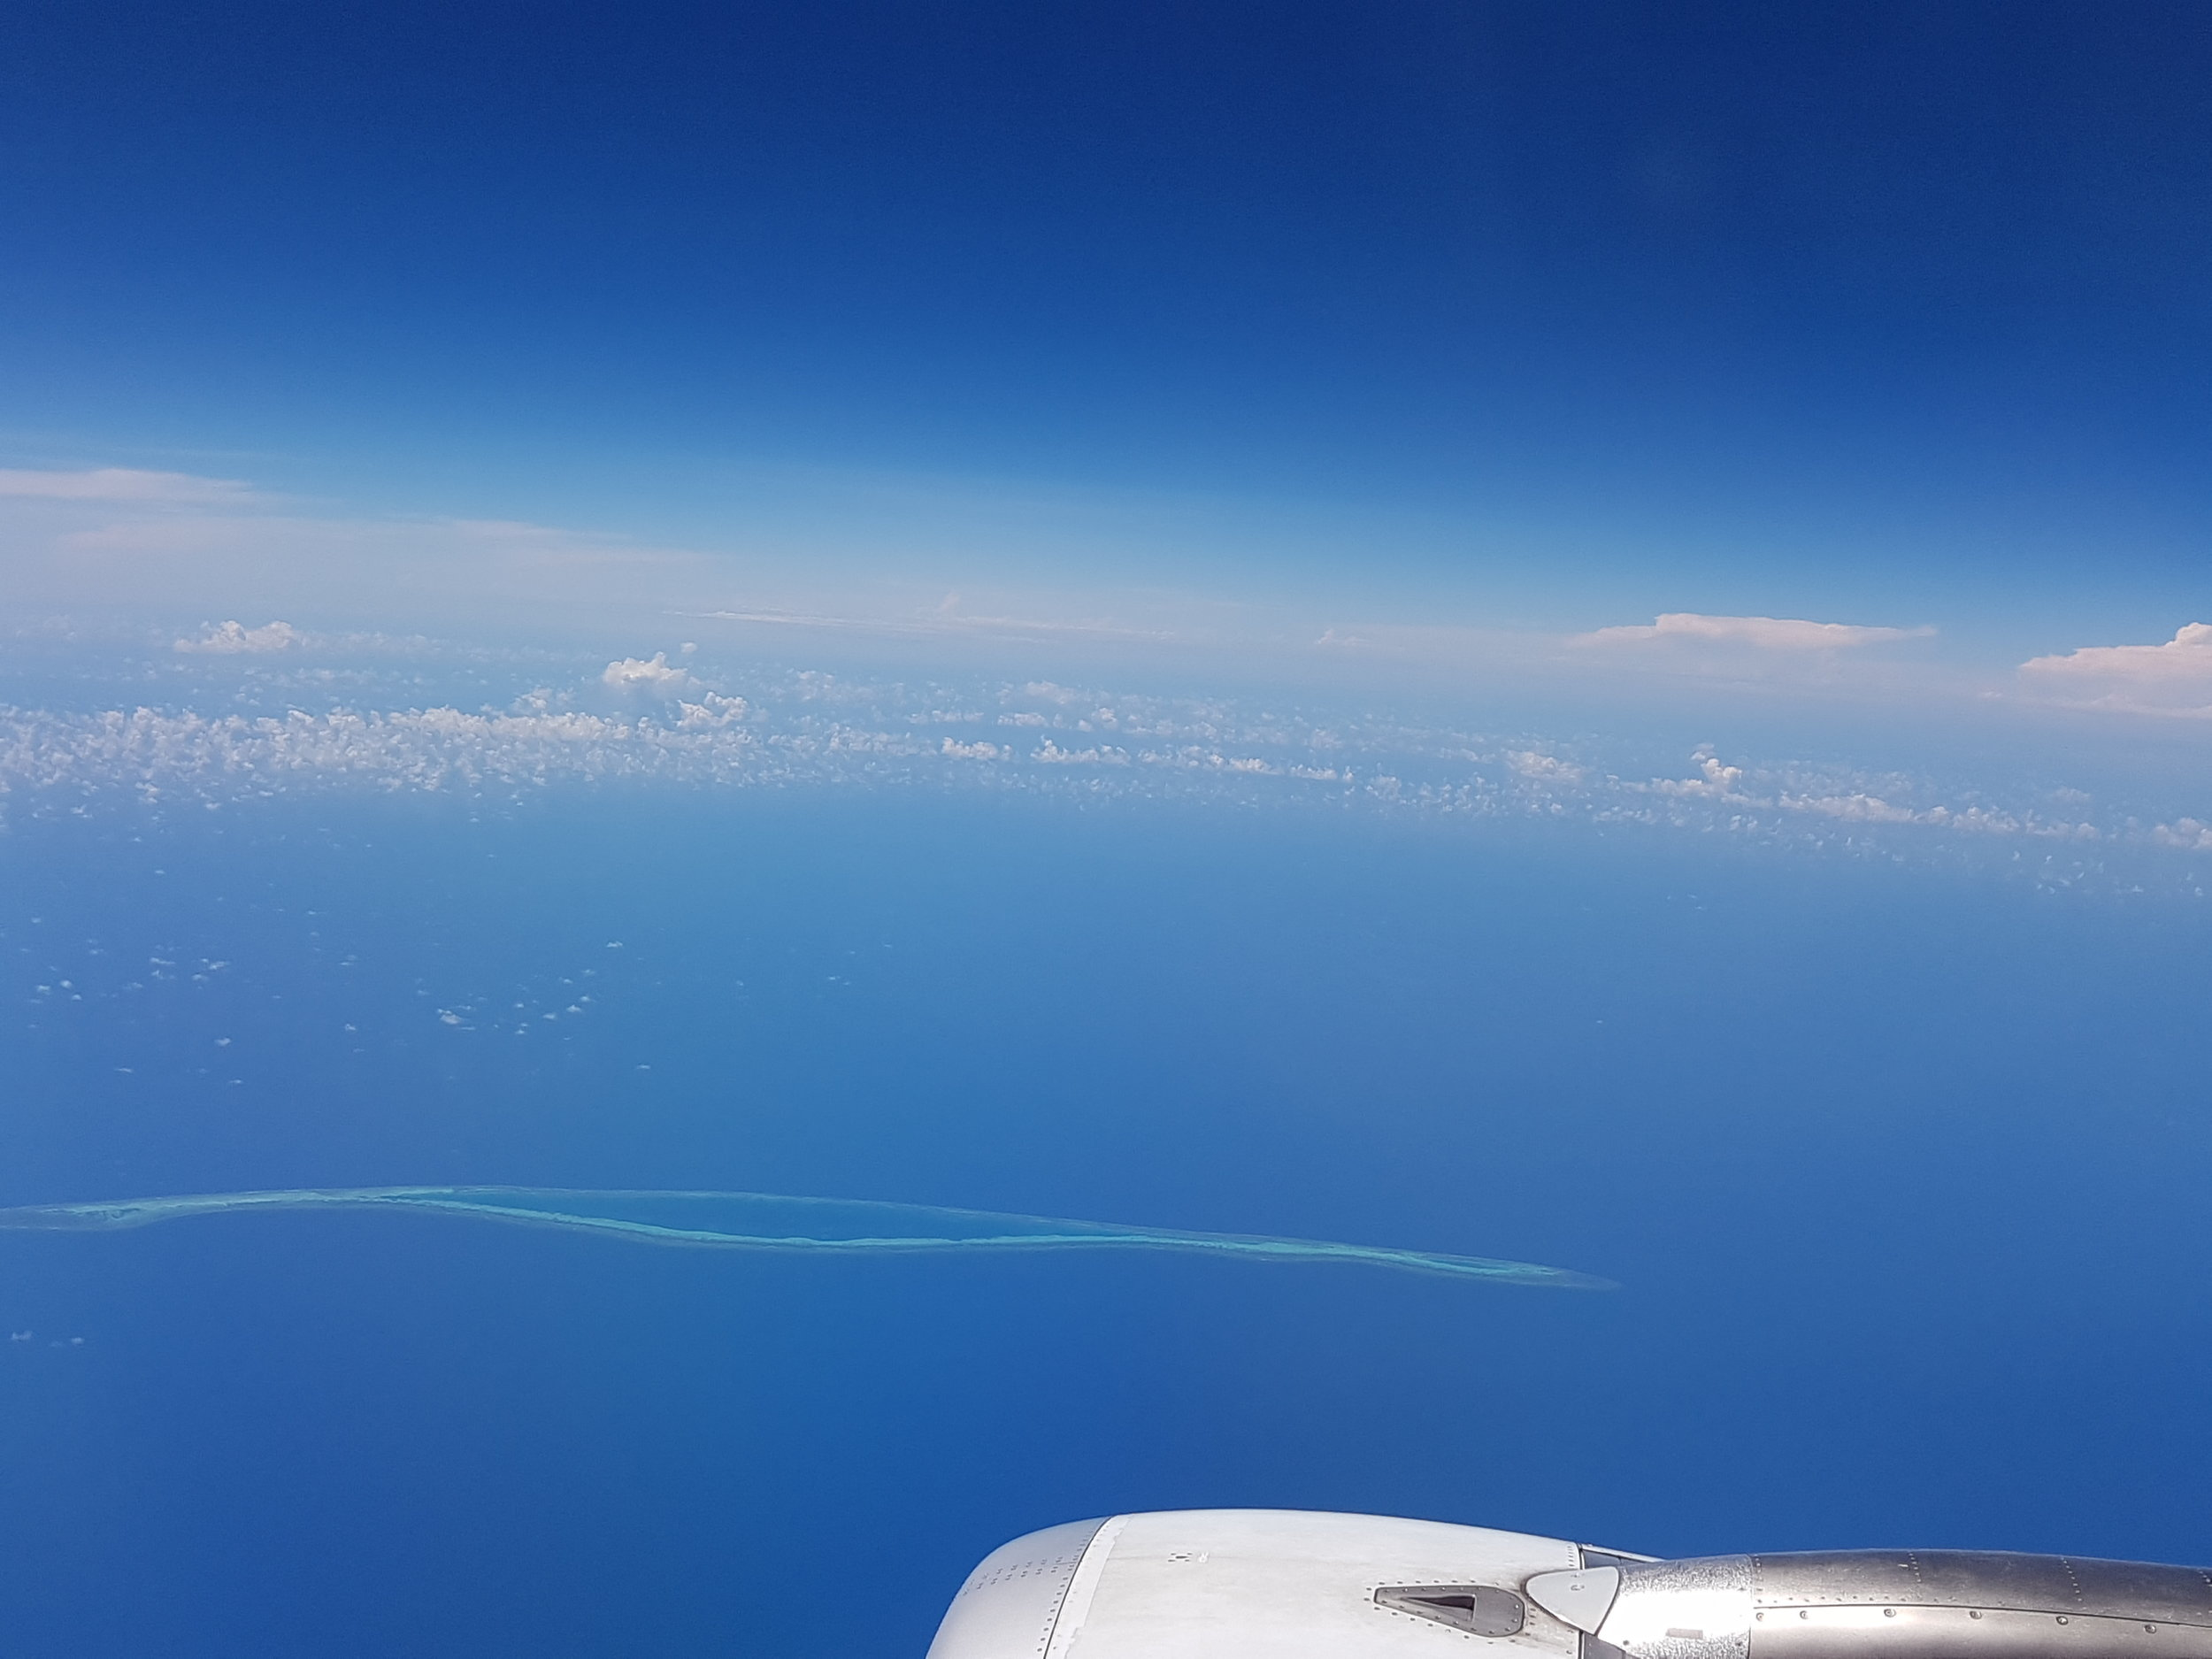 One of the Spratly Islands in the South China Sea